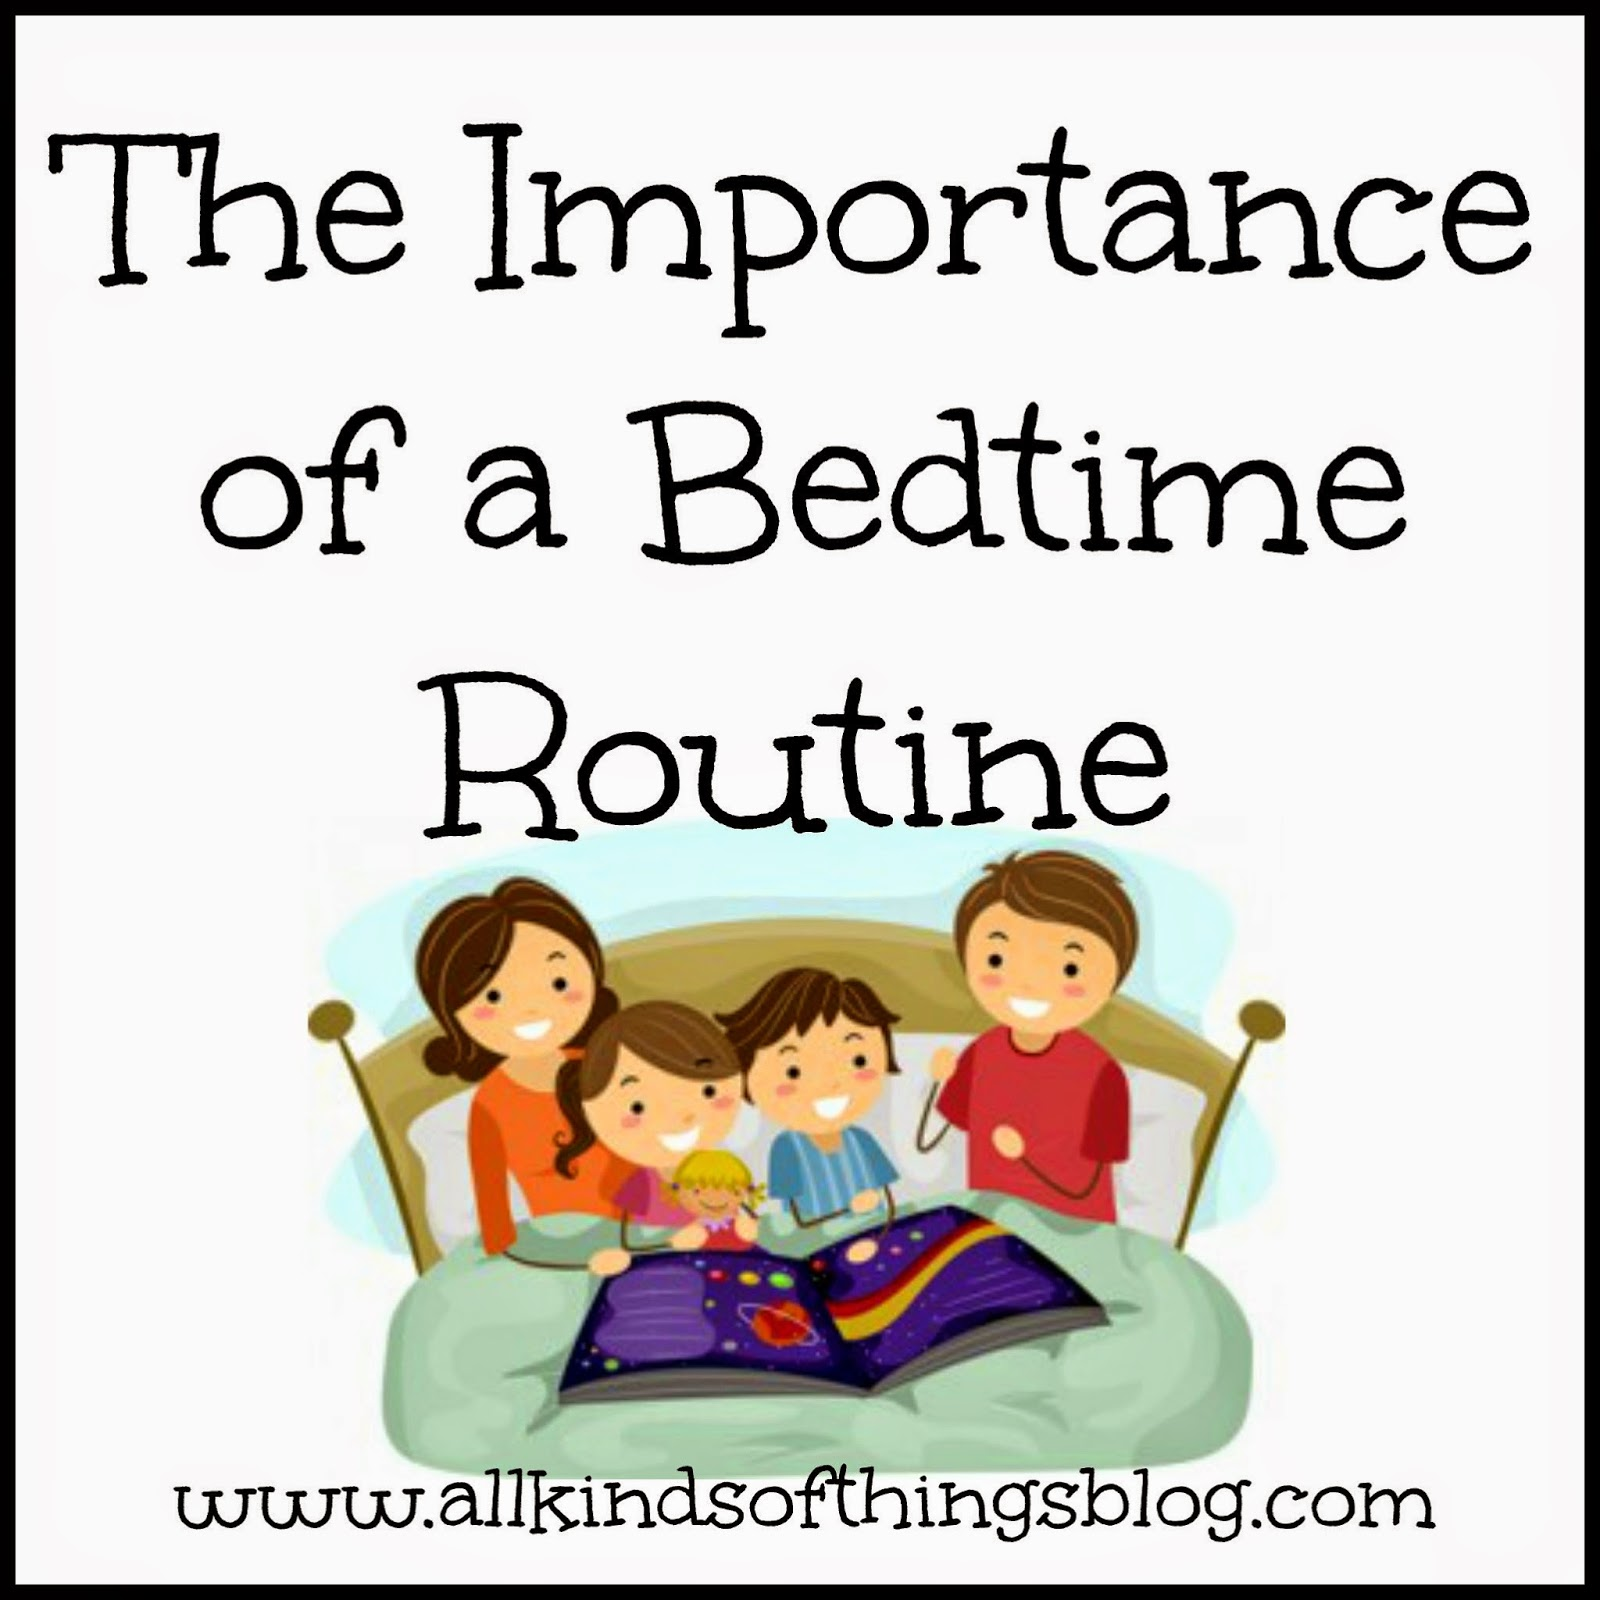 The Importance of a Bedtime Routine